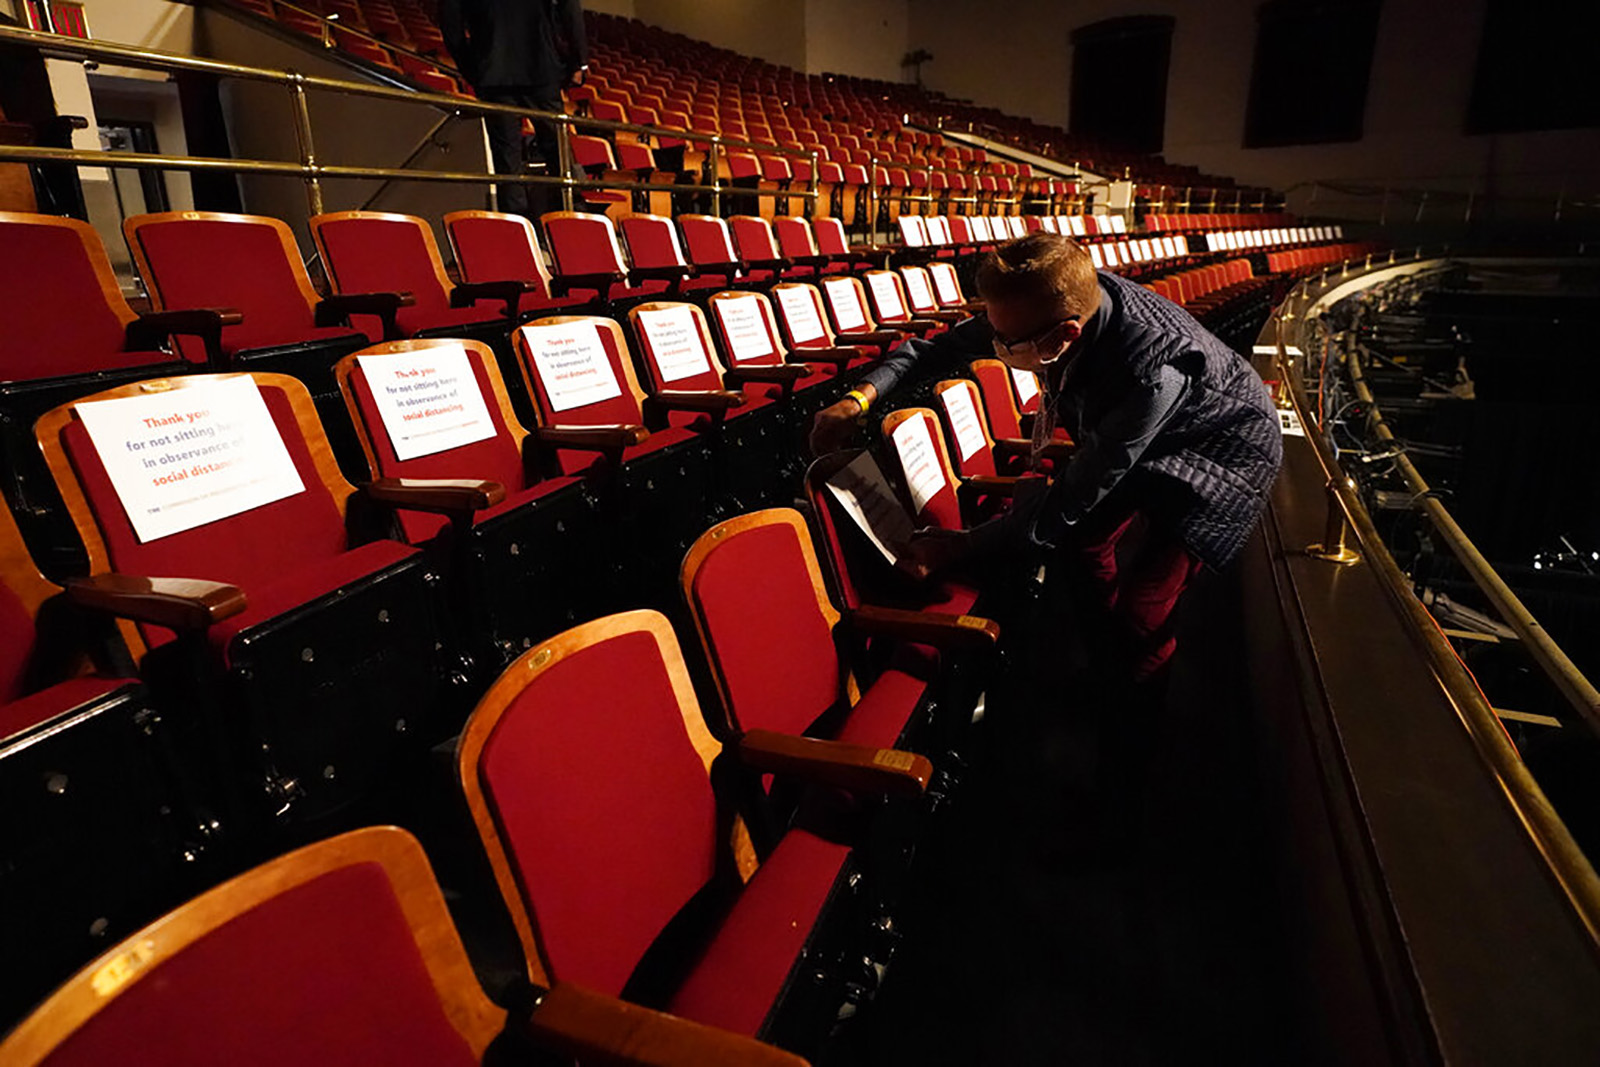 A member of the production staff puts labels on seats in an effort to keep seats socially distanced ahead of the vice presidential debate at the University of Utah, On Wednesday in Salt Lake City.